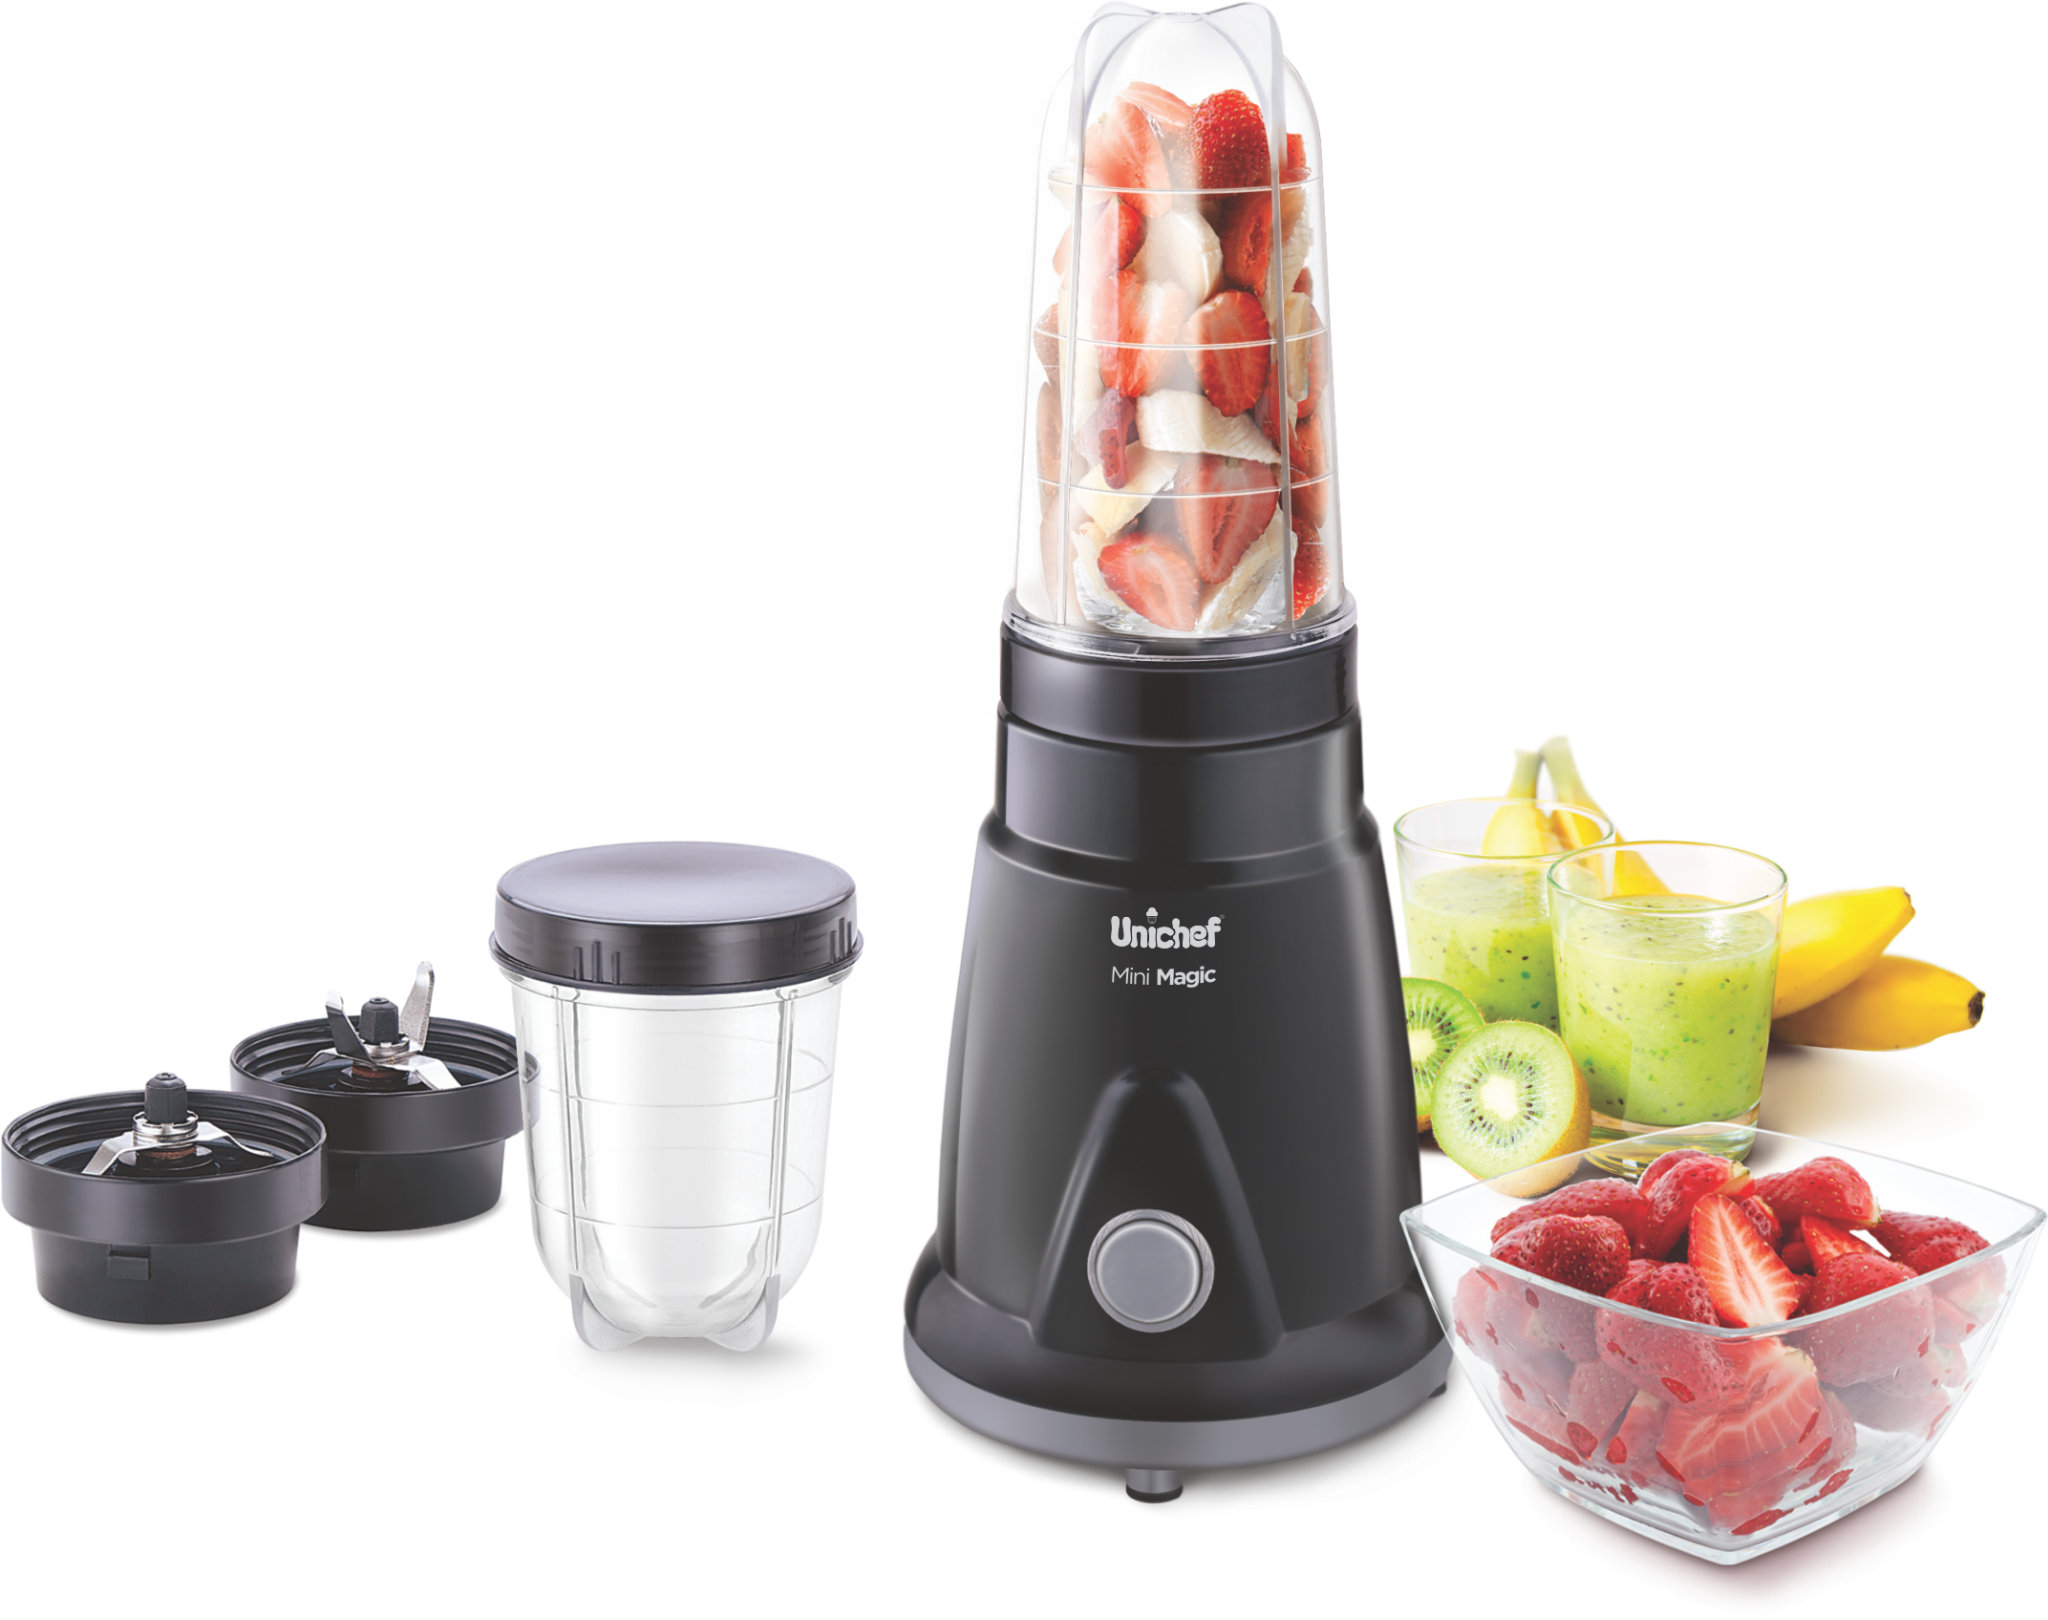 Buy Juicer Machine Online And Get Unique Experience